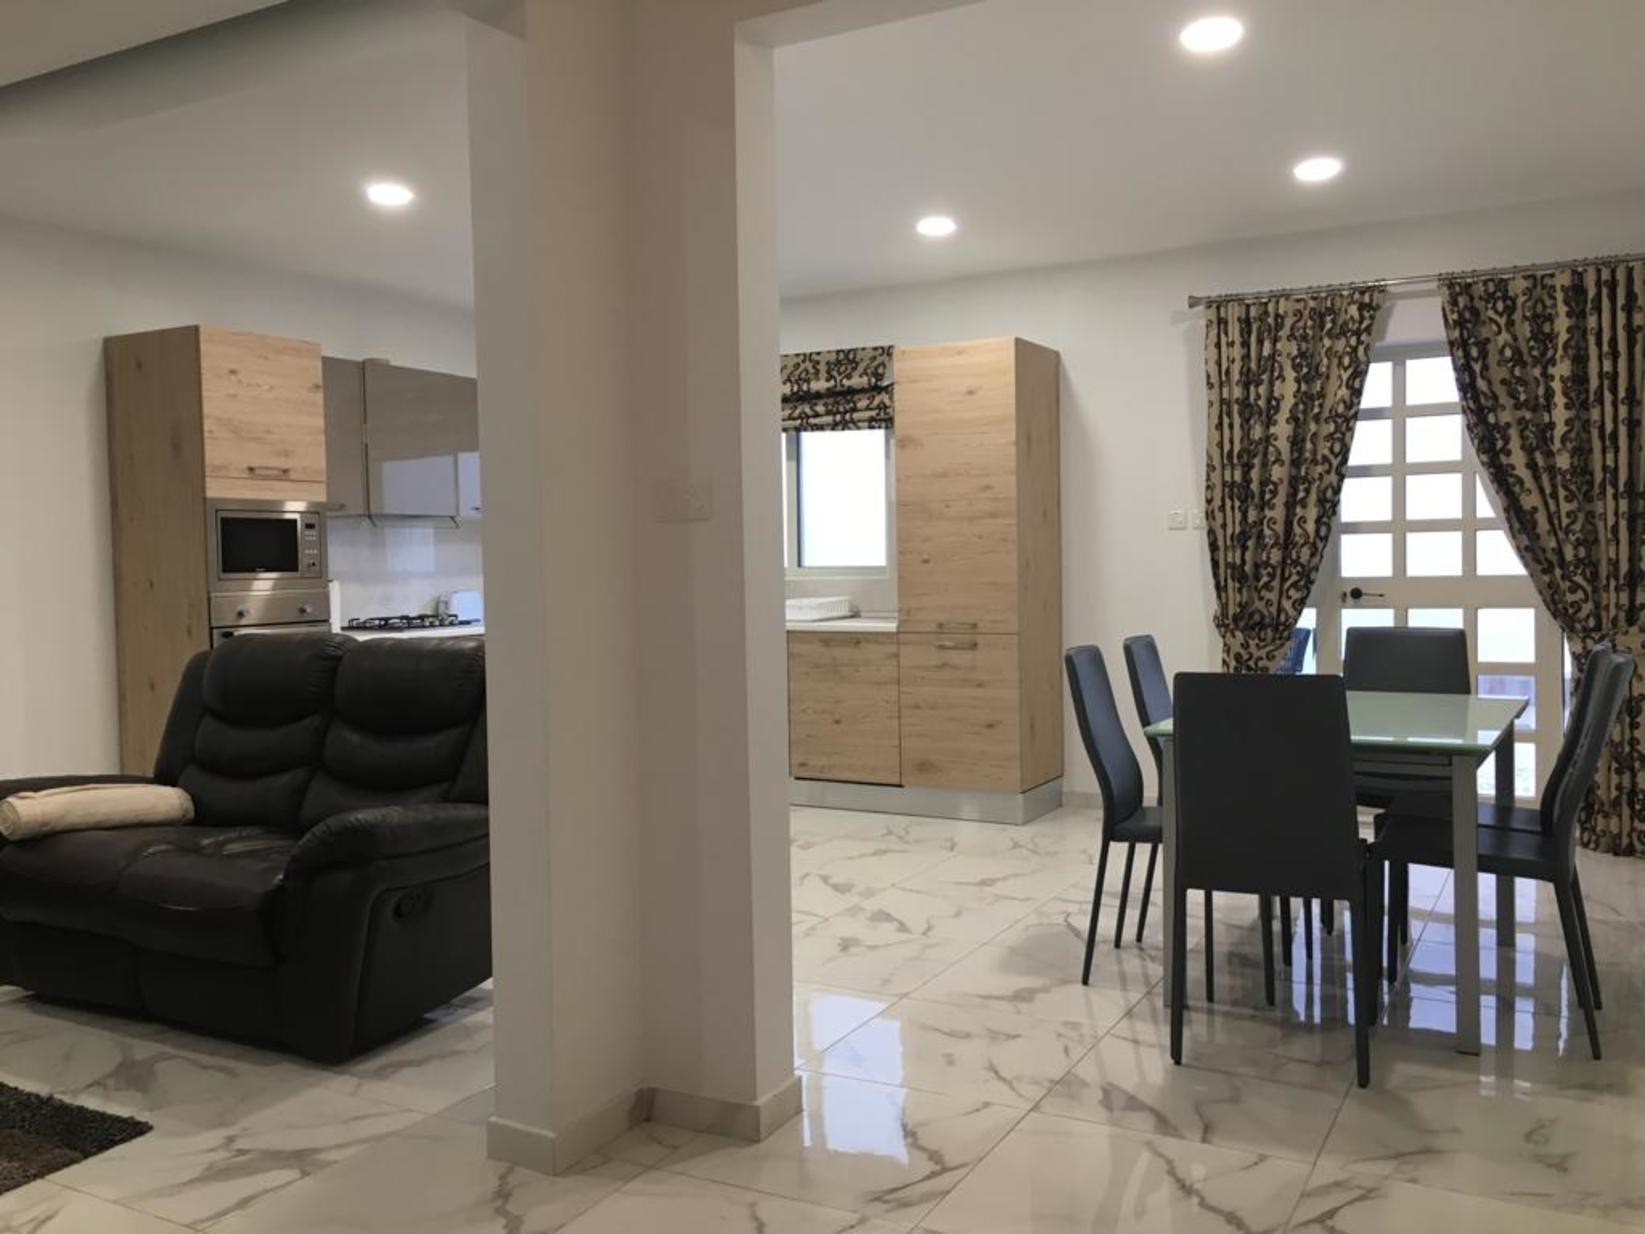 3 bed Terraced House For Rent in Mosta, Mosta - thumb 5